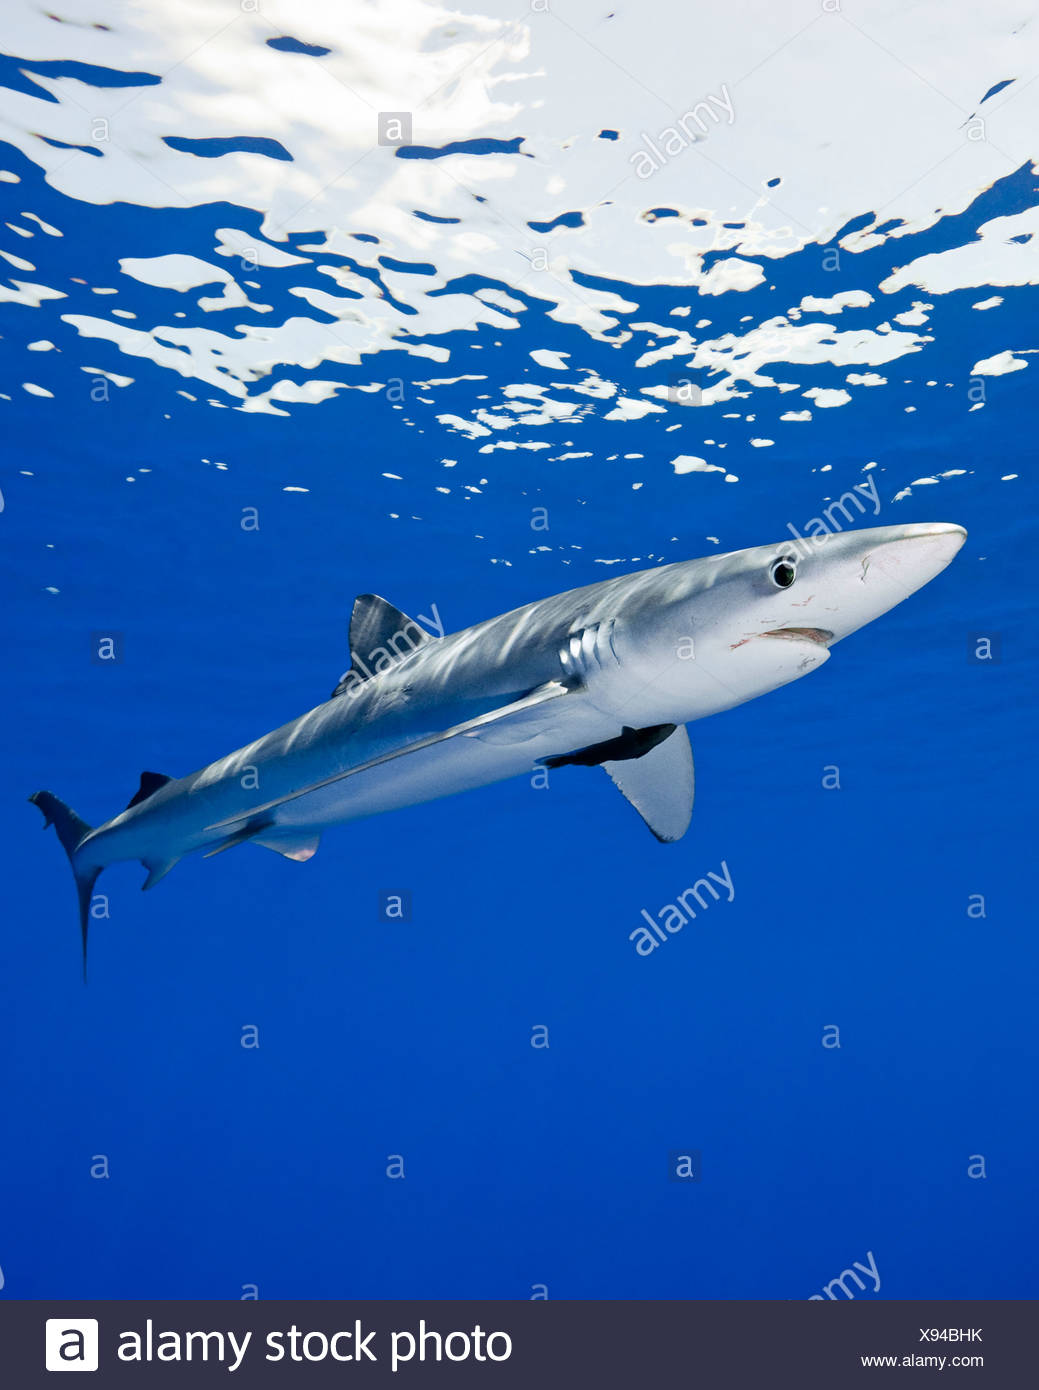 Blue shark, Prionace glauca, large female with mating scar on its side - Stock Image